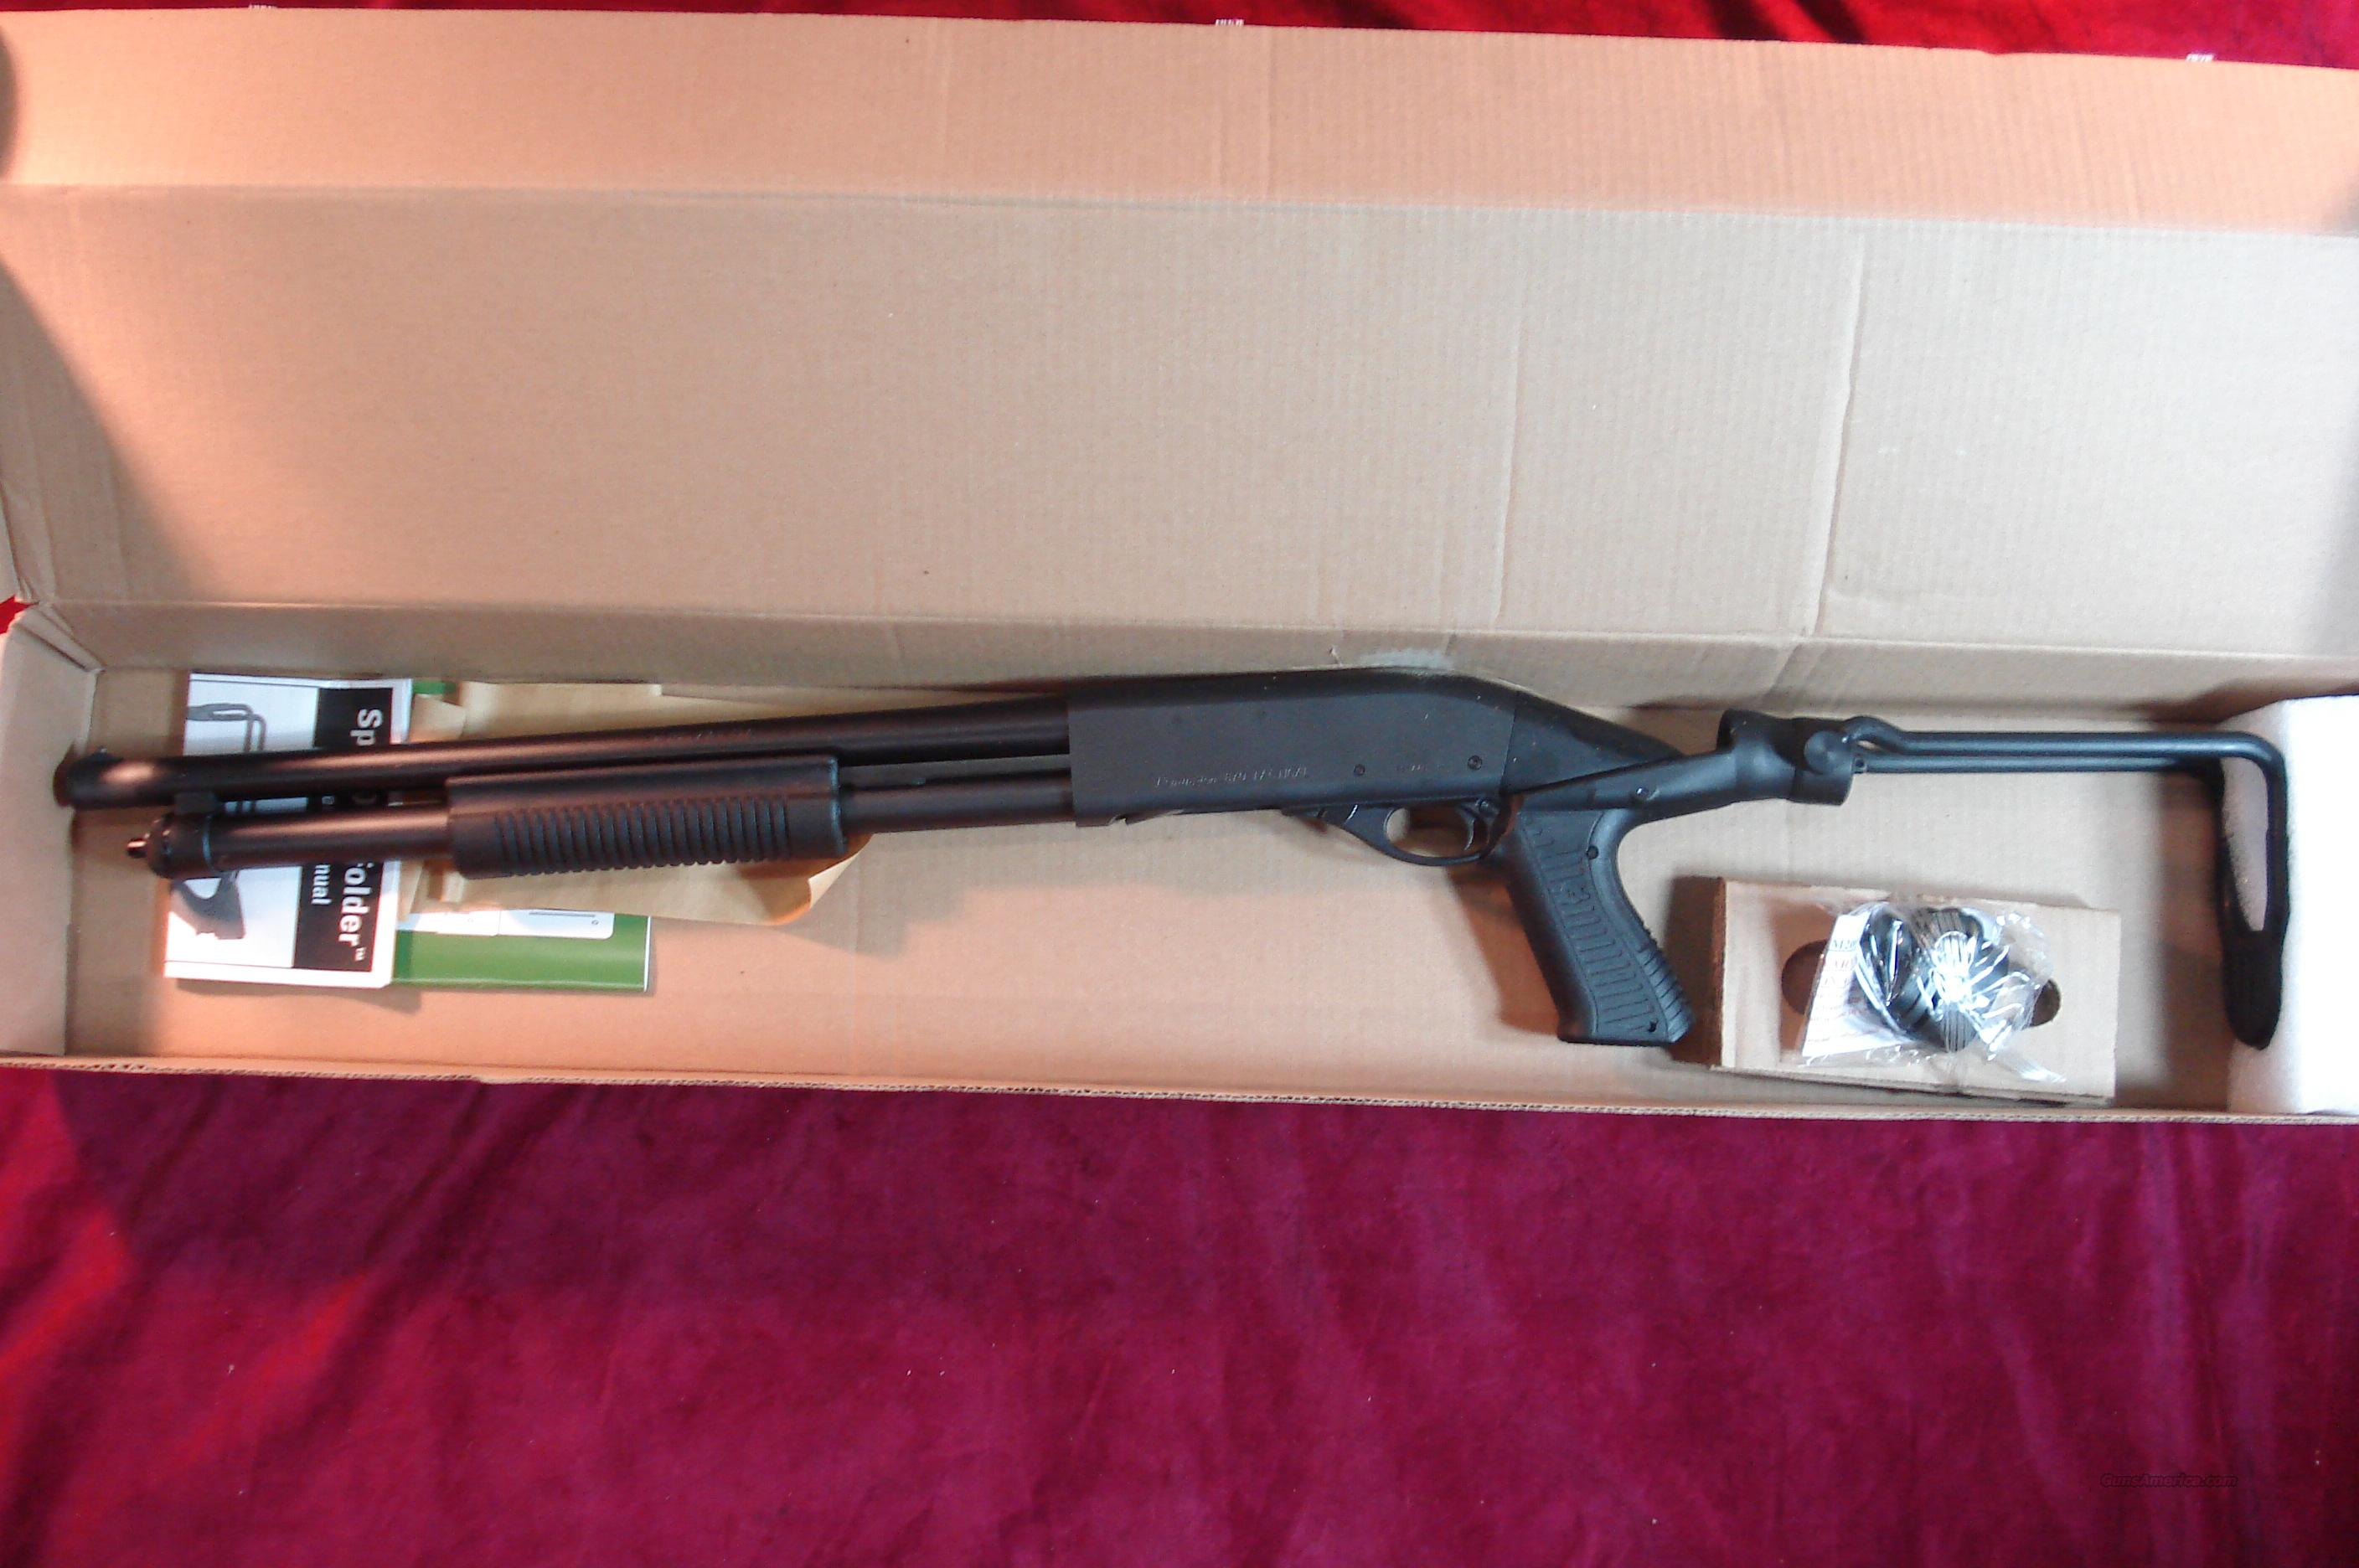 REMINGTON 870 12G TAC2 MAGNUM KNOXX SPEC-OPS FOLDING STOCK NEW   Guns > Shotguns > Remington Shotguns  > Pump > Tactical